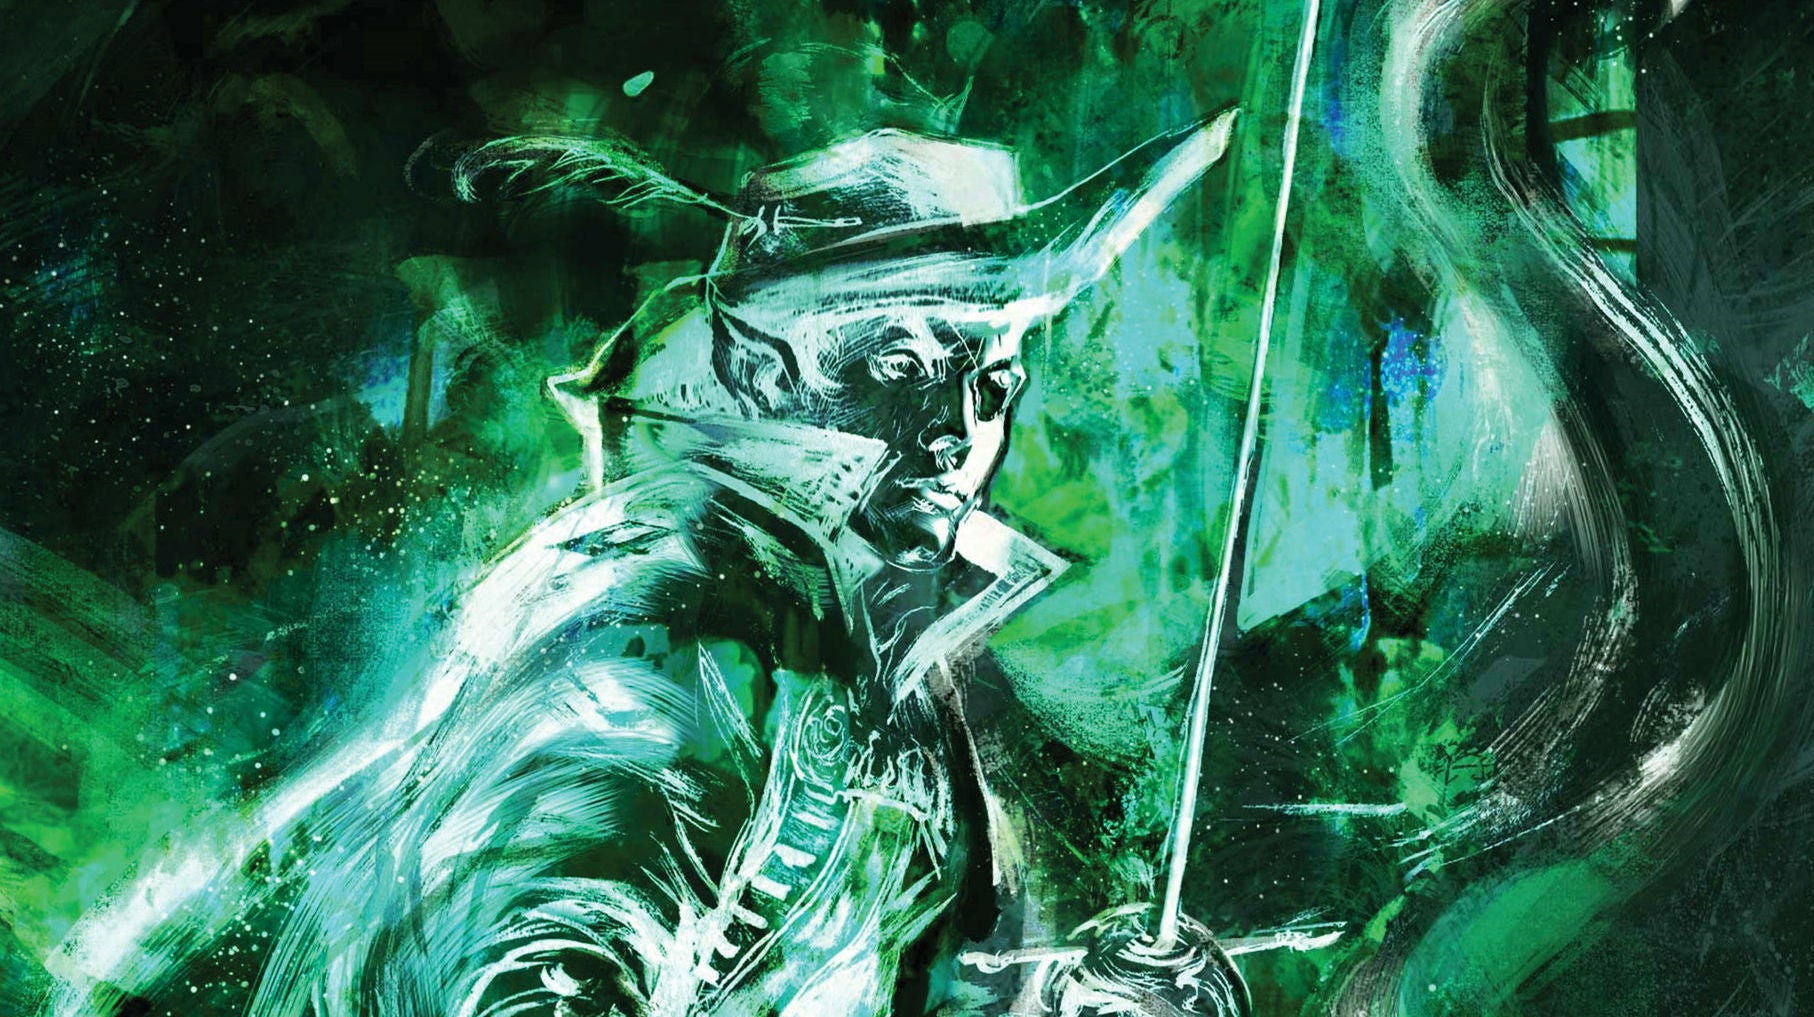 Relentless Demons Hunt Our Heroes In This Early Look At R.A. Salvatore's Next Drizzt Novel, Boundless